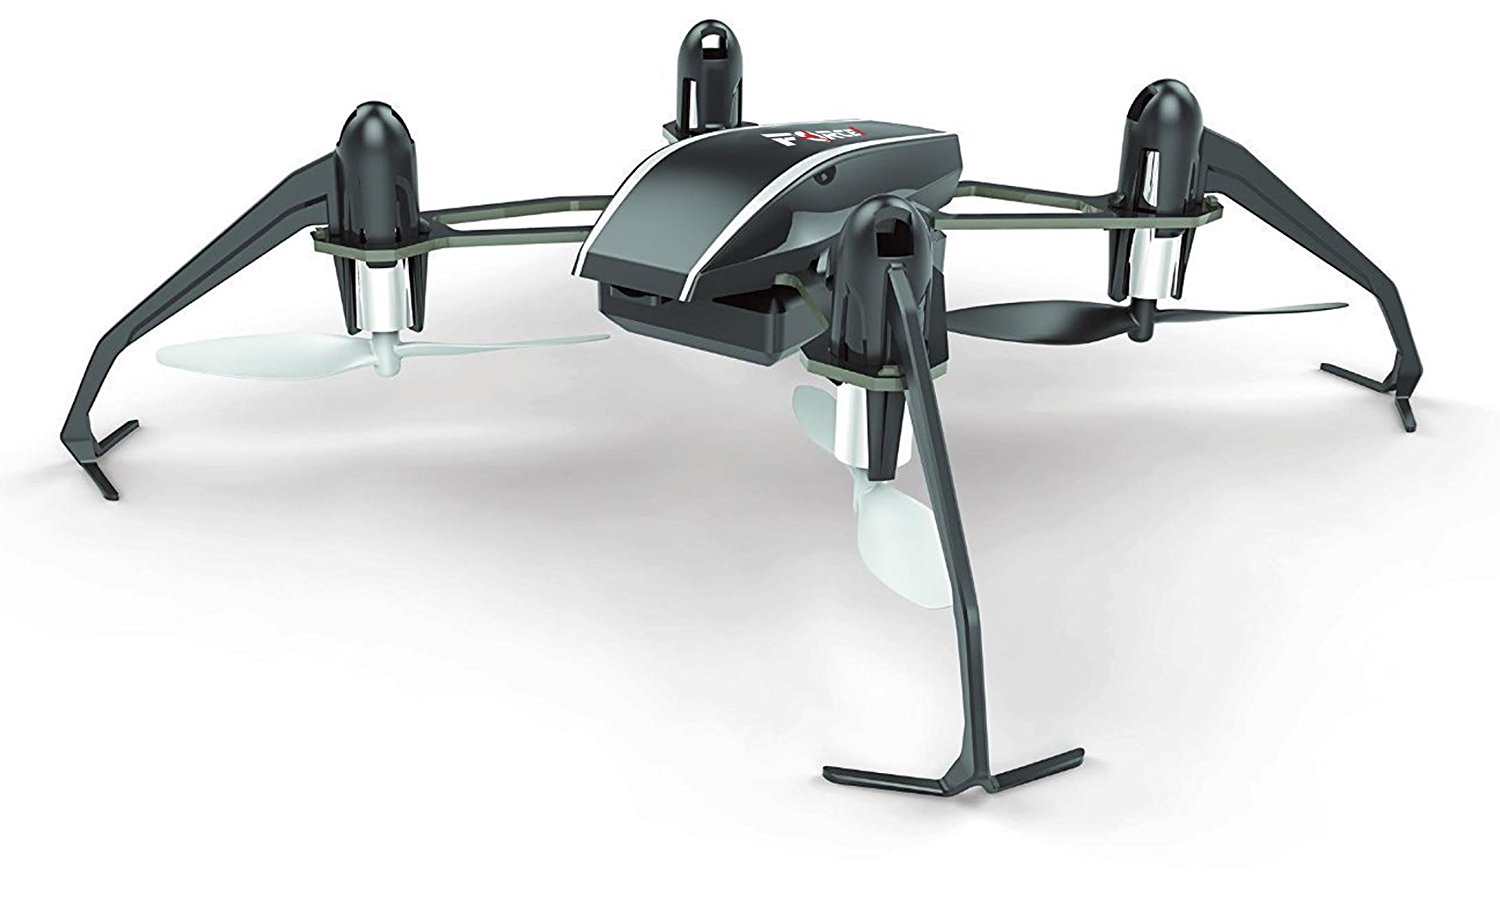 udi rc drone with P Amarm0043us on Index as well 397405 further 372845 also 23143 additionally 19084.